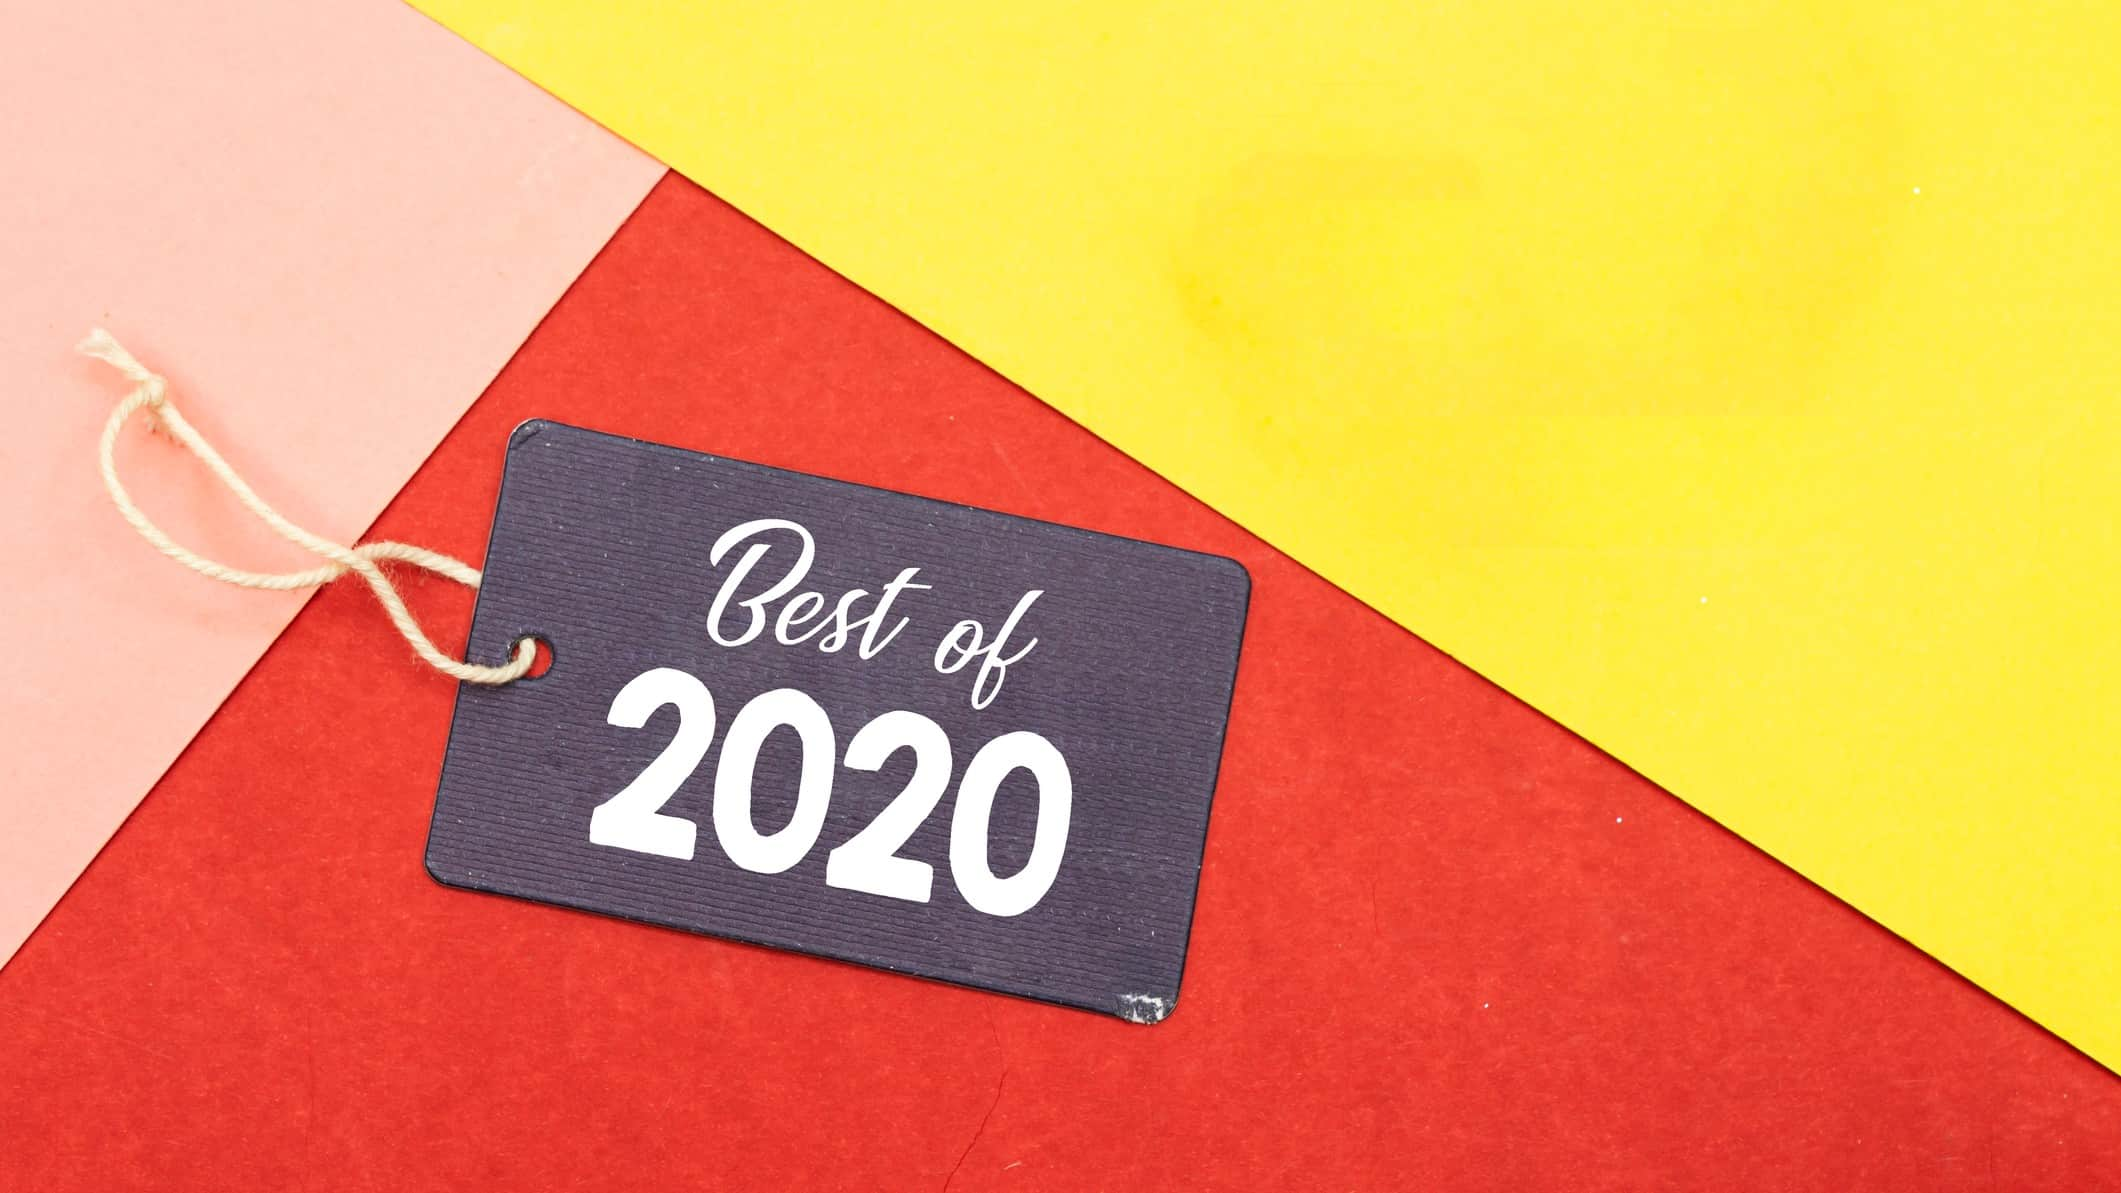 best asx shares of 2020 represented by tag stating best of 2020 against colourful background